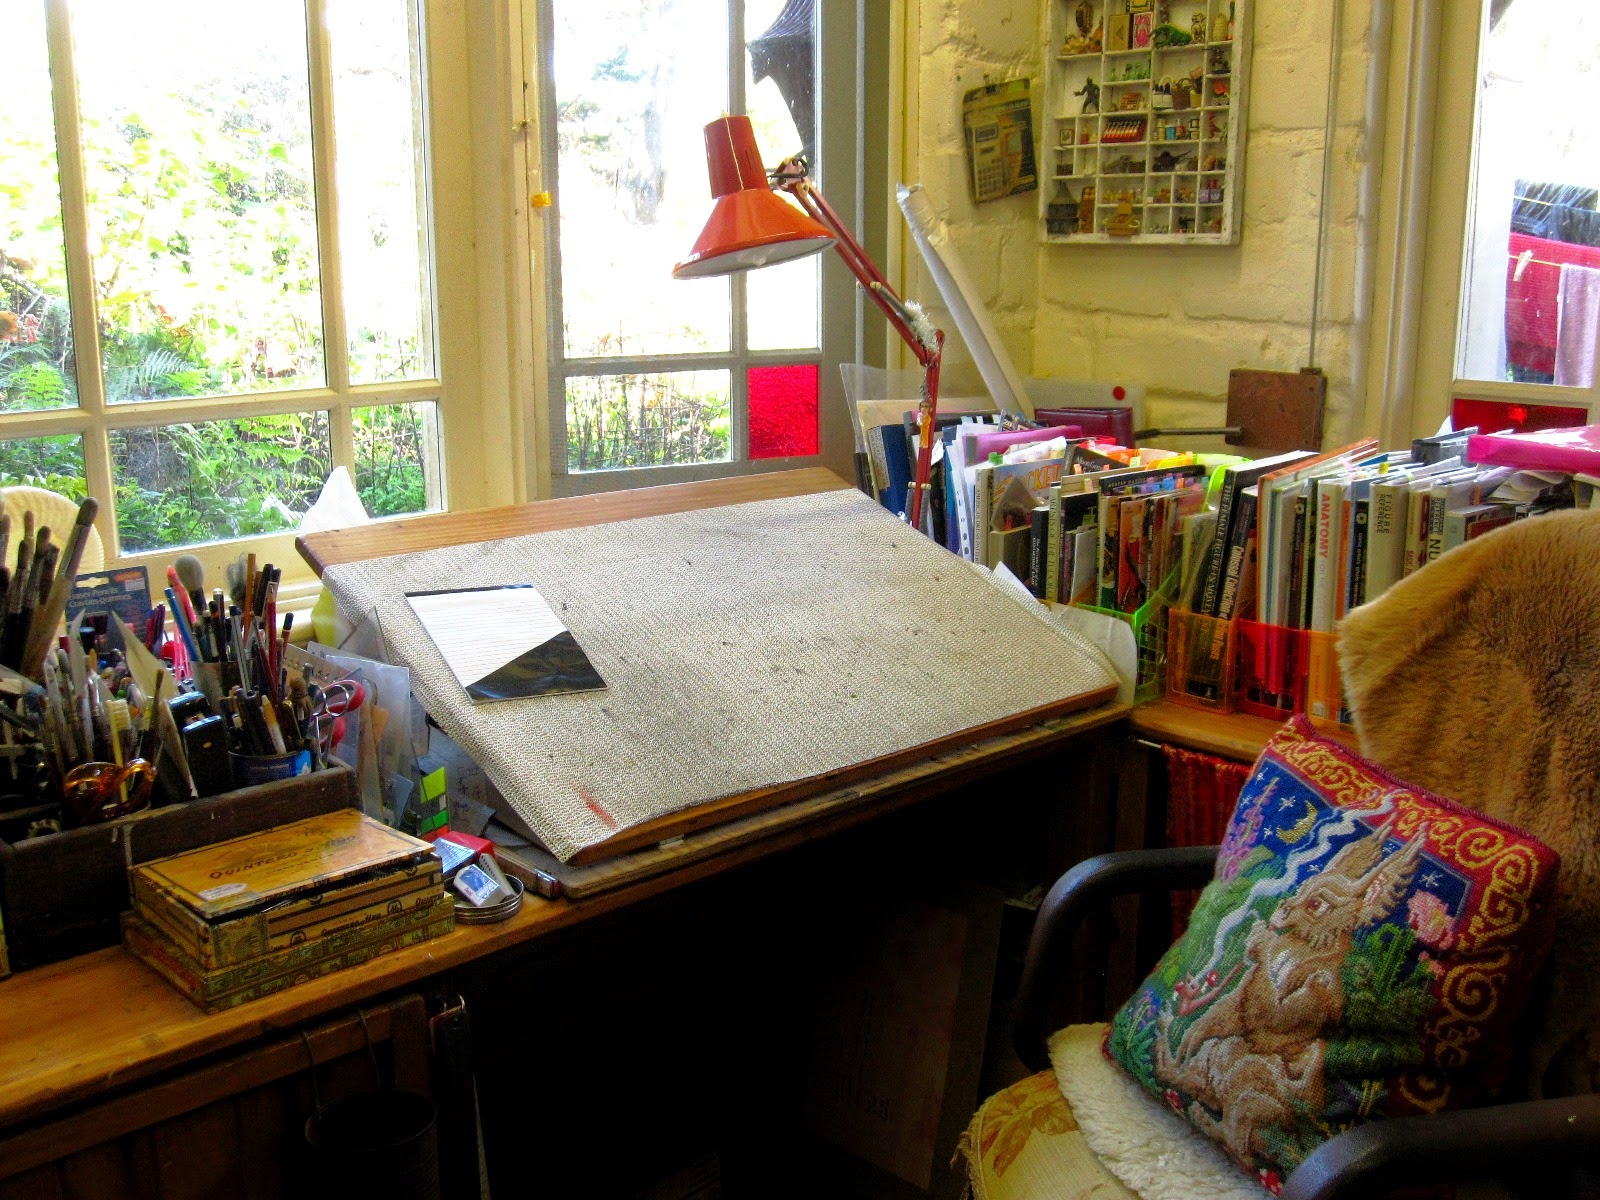 Drawing table with lamp, in the corner of a room overlooking the garden. On the desk chair is a tapestry cushion of a fantasy creature.